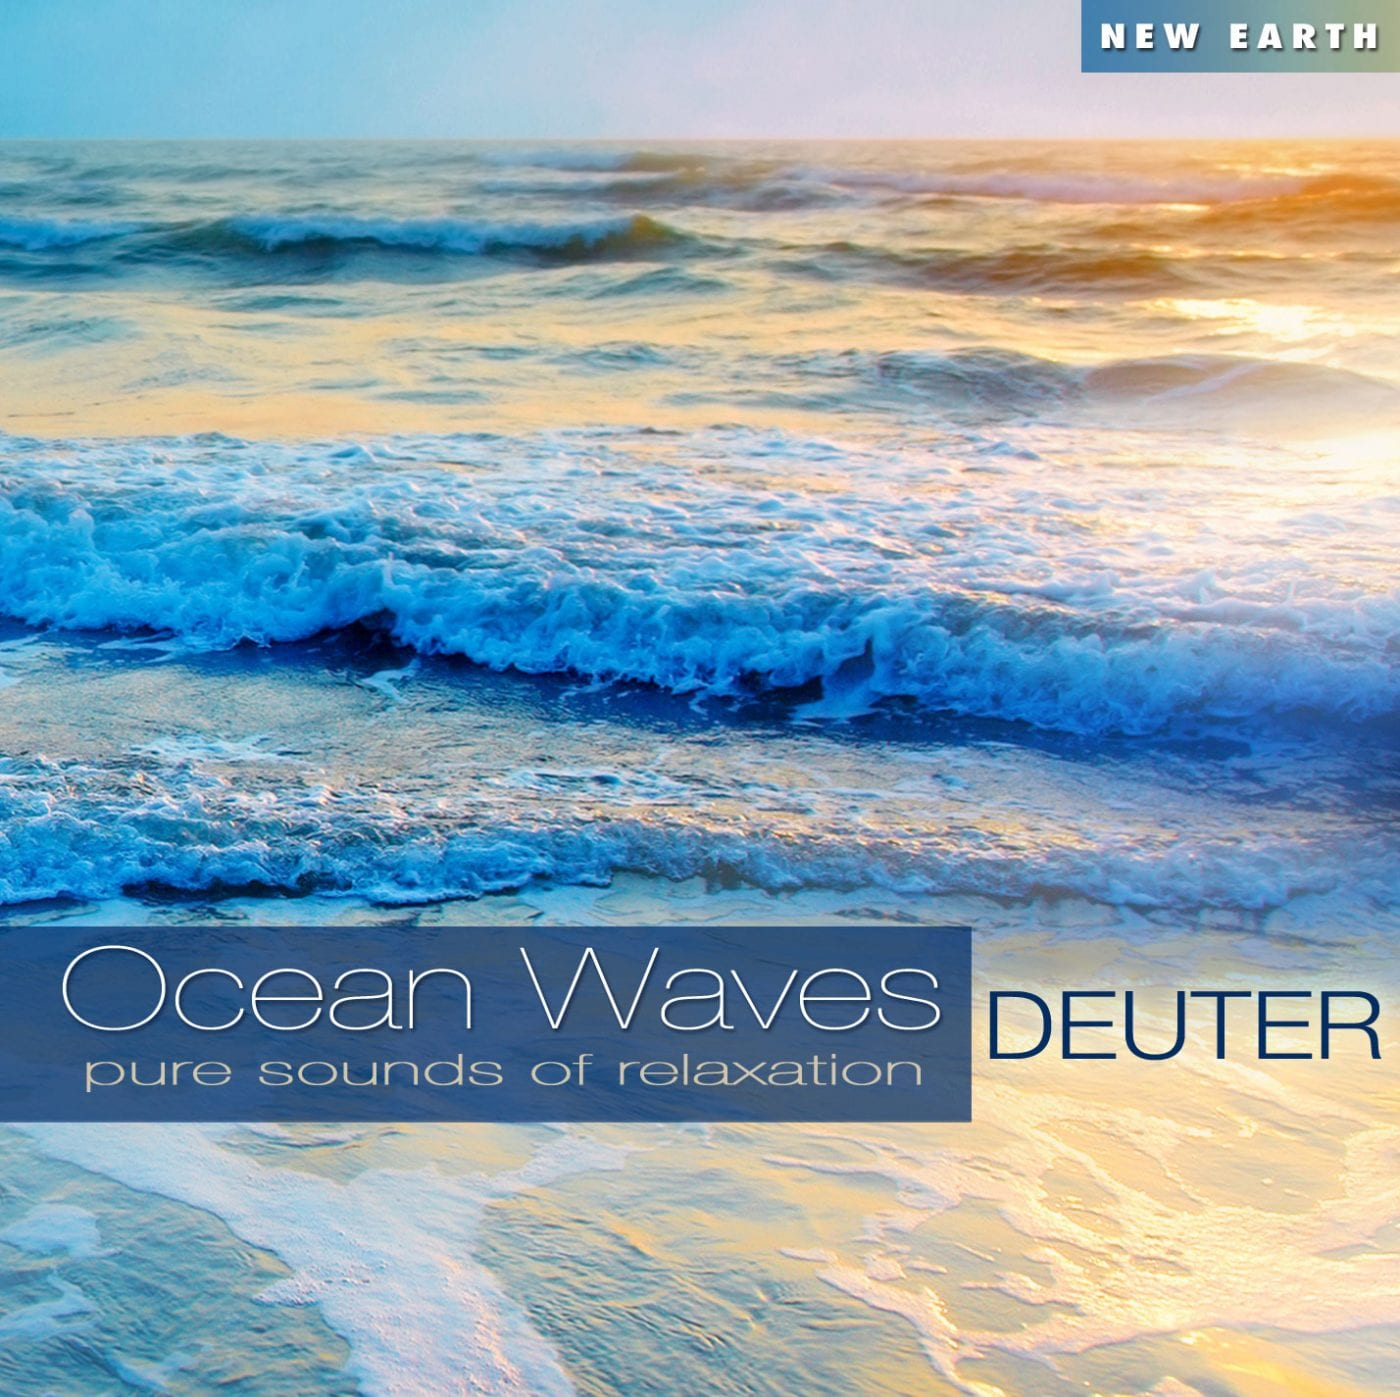 Ocean Waves - Music by Deuter New Earth Records